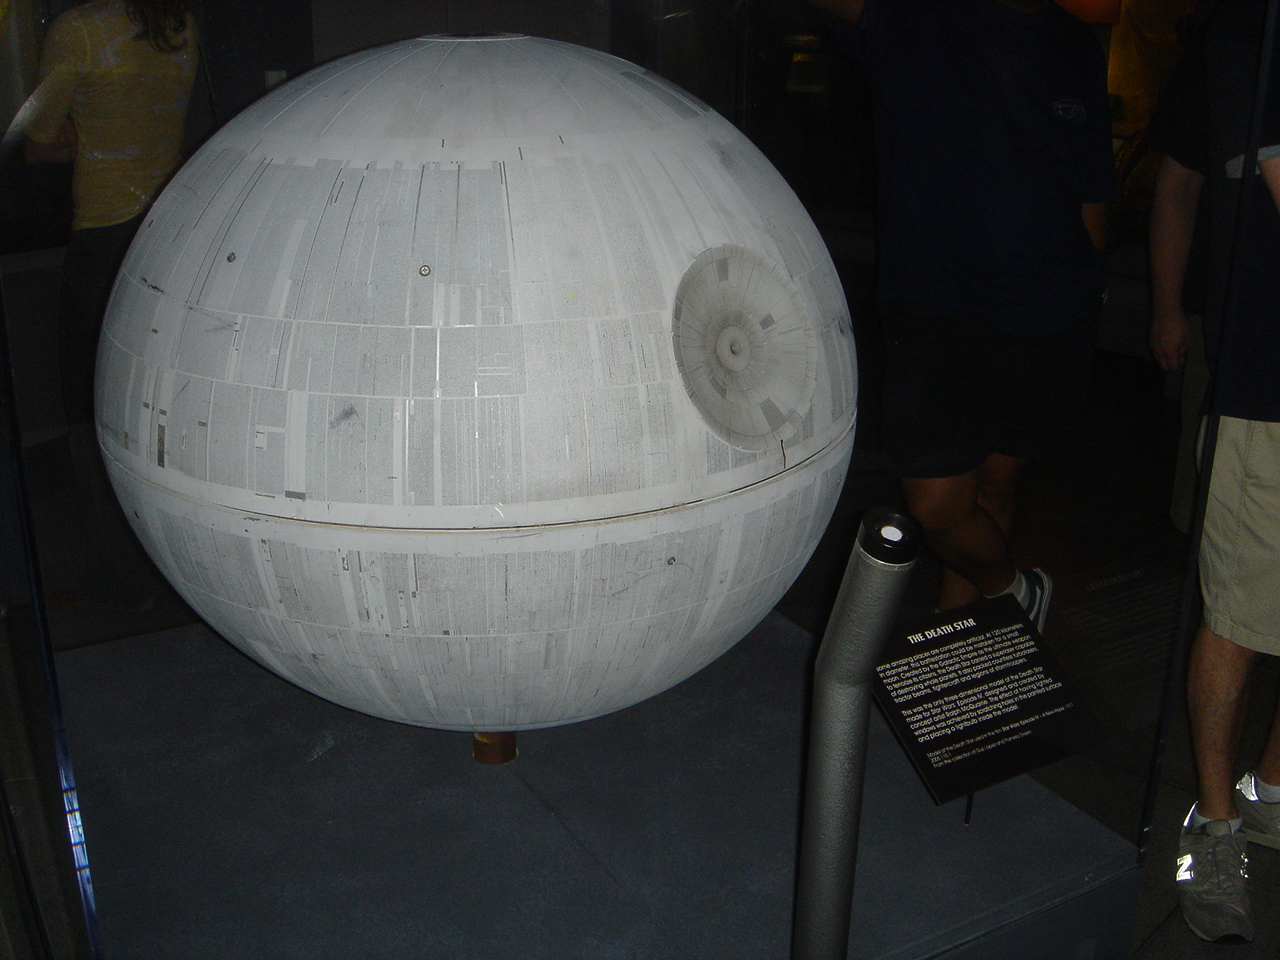 Death Star Model - On Display at EMP